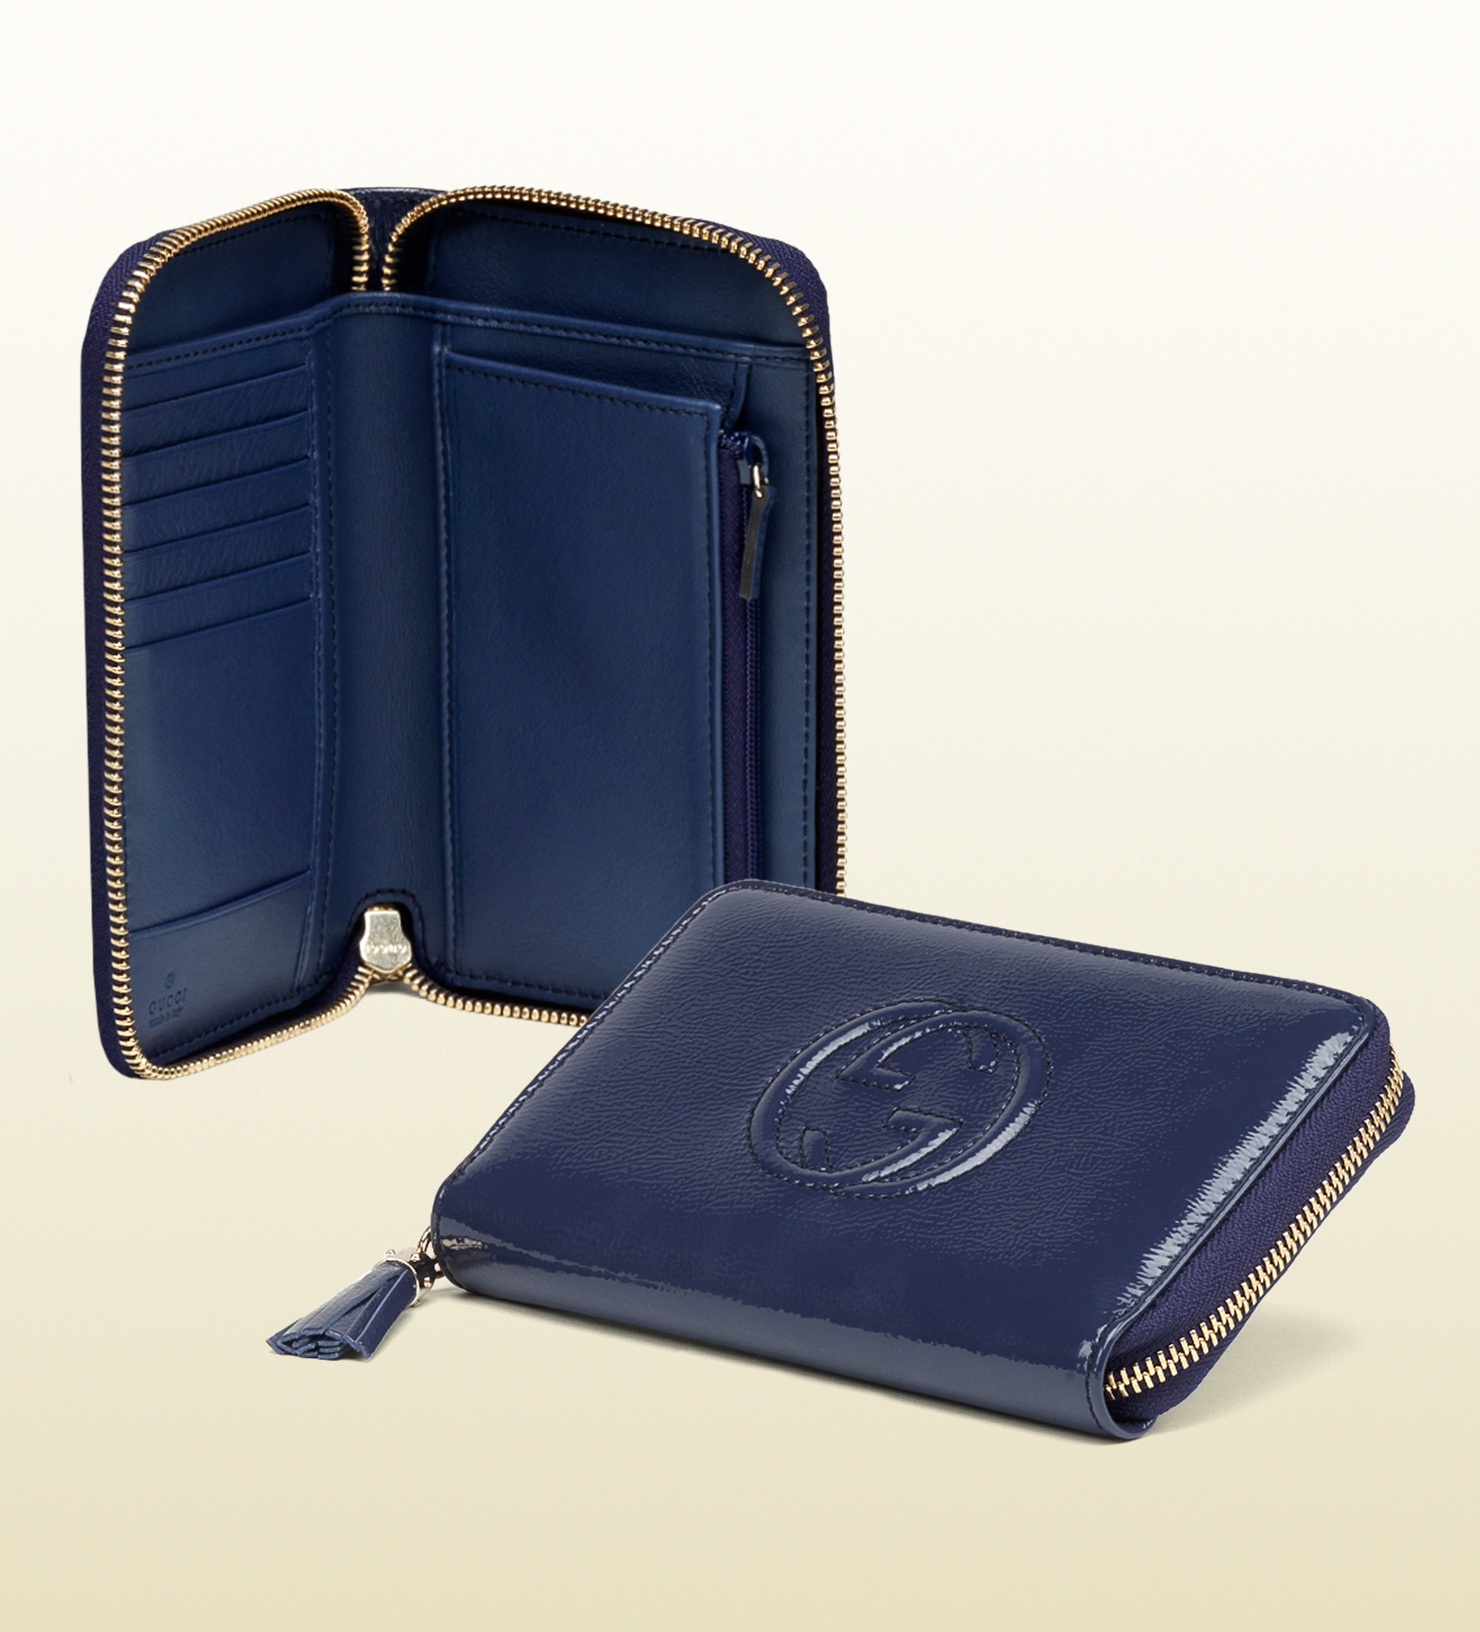 6908ce4eb70e12 Gucci Soho Blue Soft Patent Leather Medium Zip Around Wallet in Blue ...